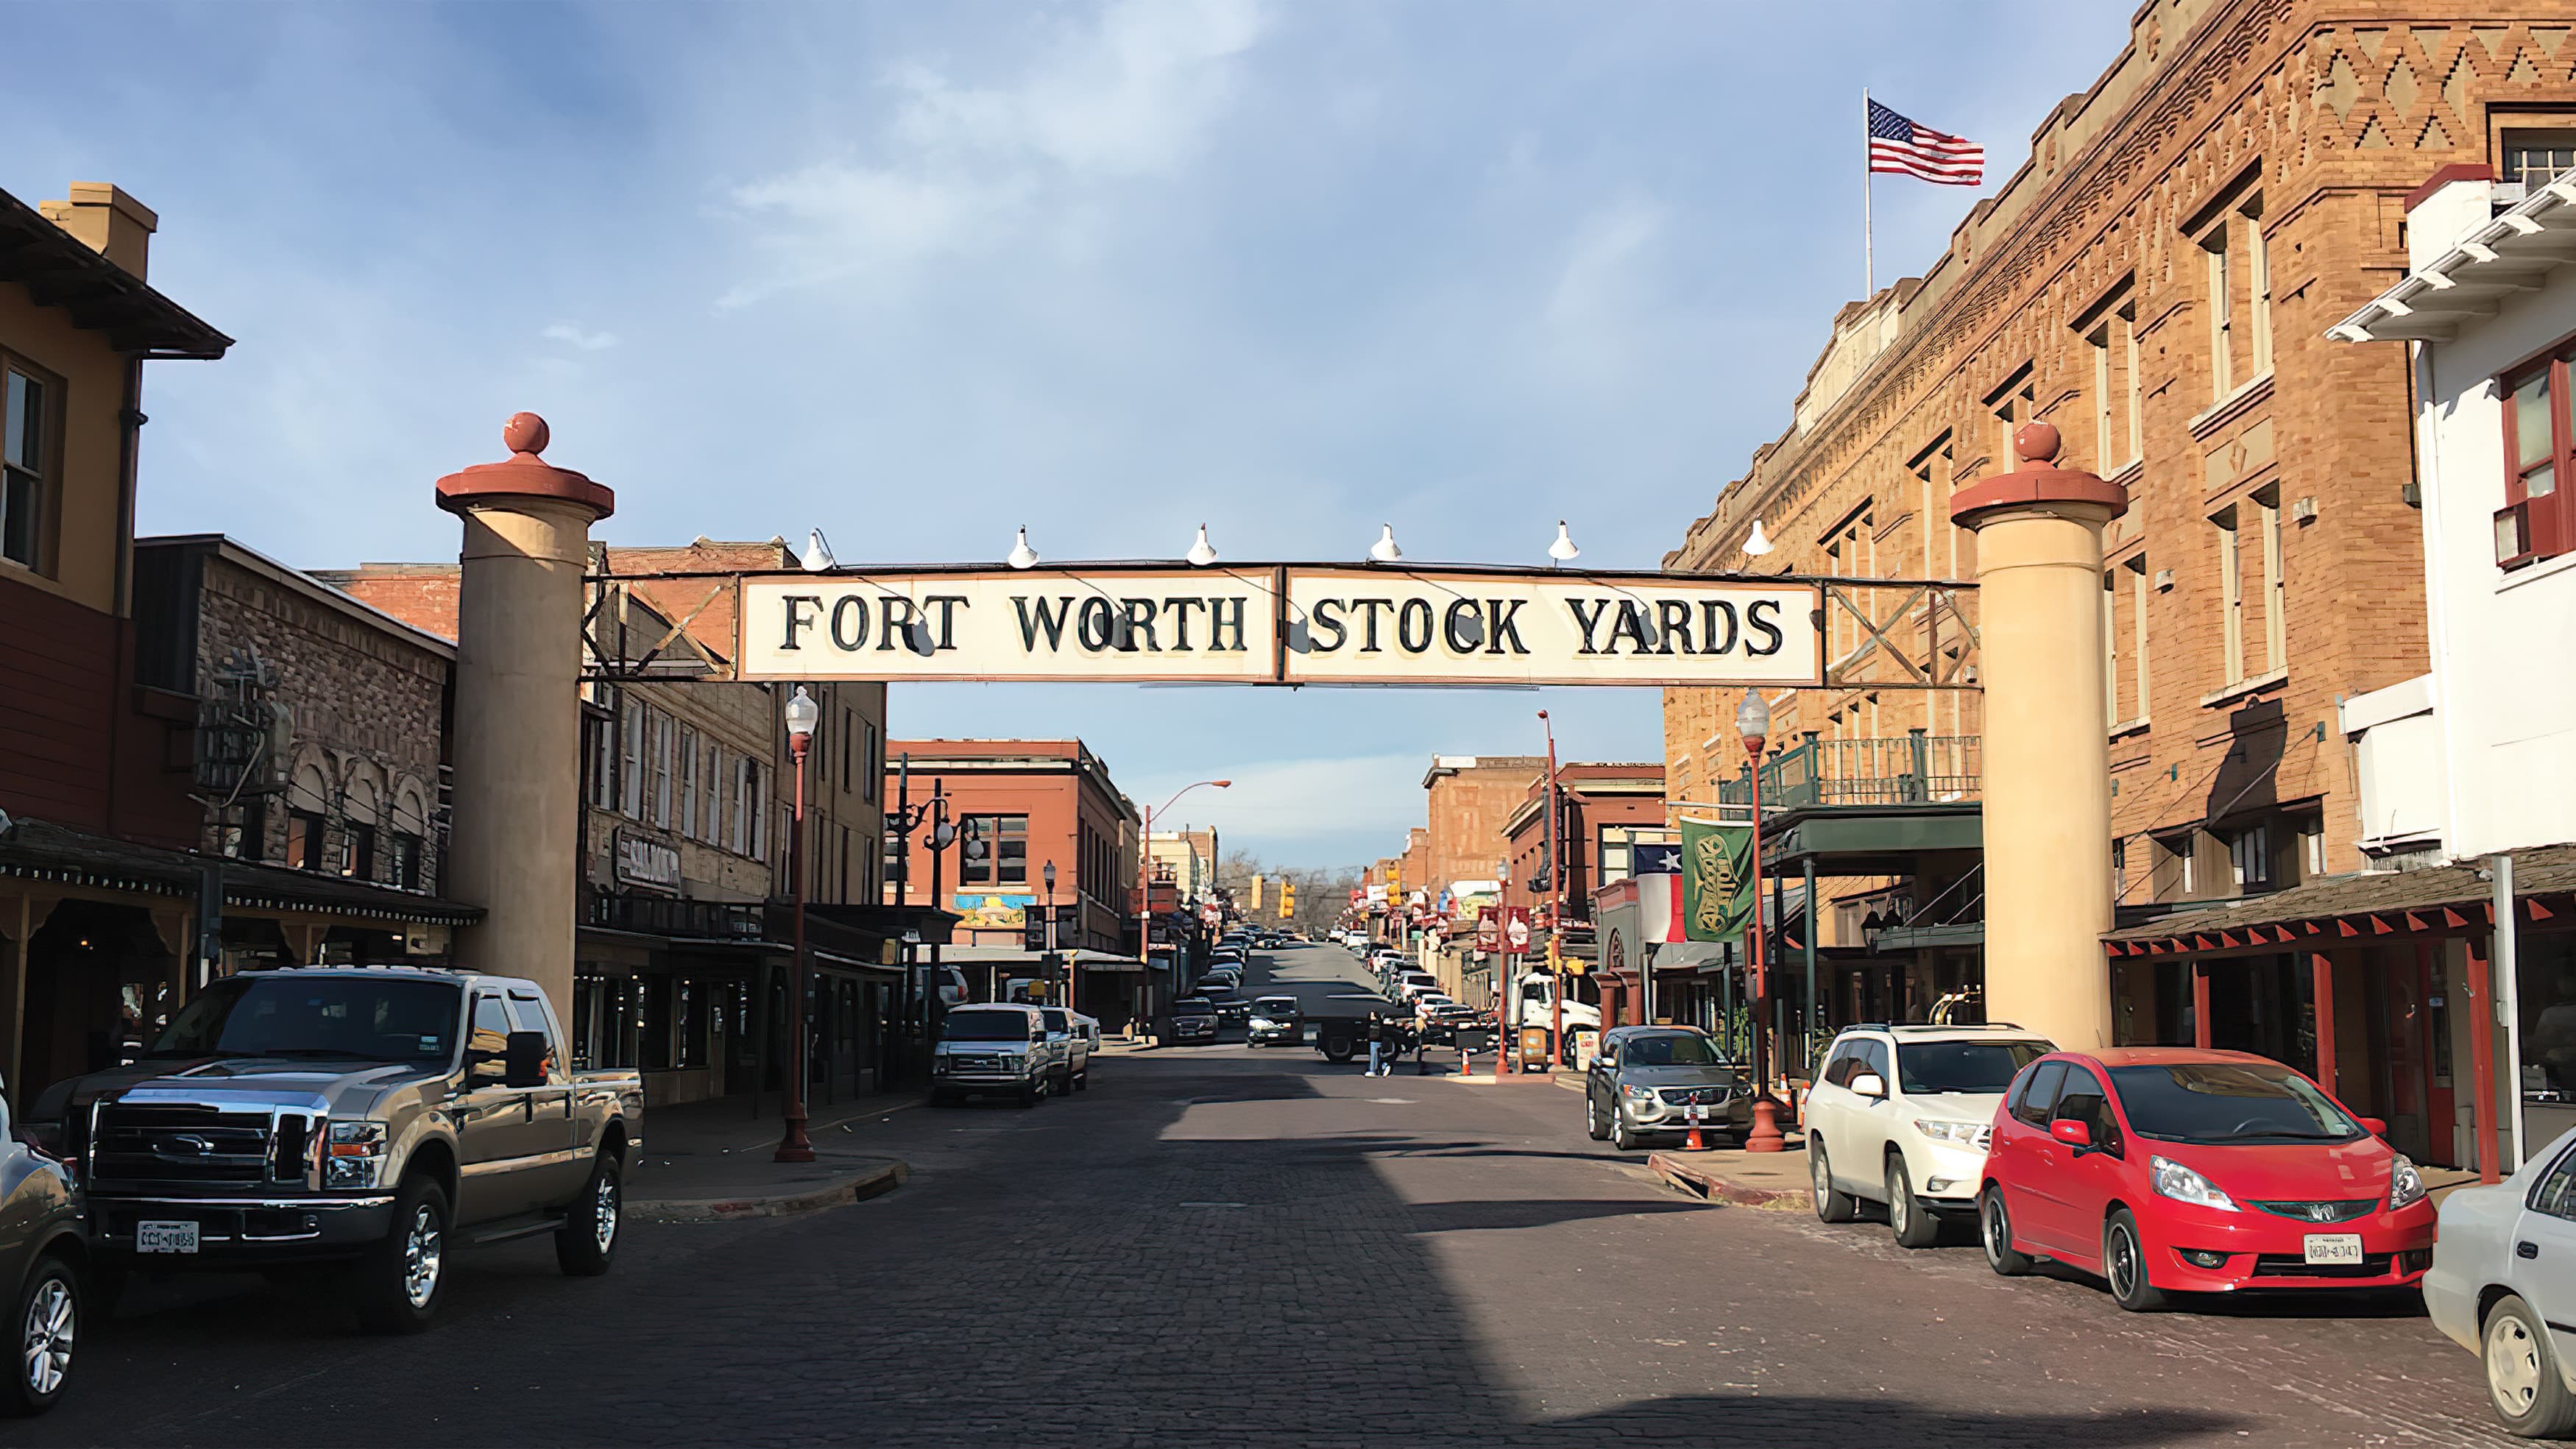 historic-style Fort Worth Stock Yards gateway identity spanning over street